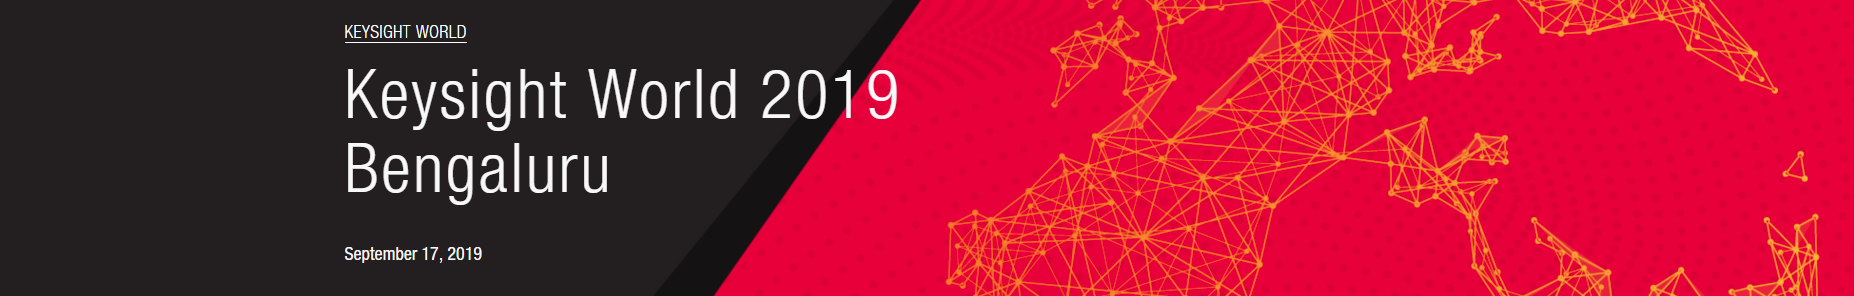 Keysight World 2019-Bengaluru